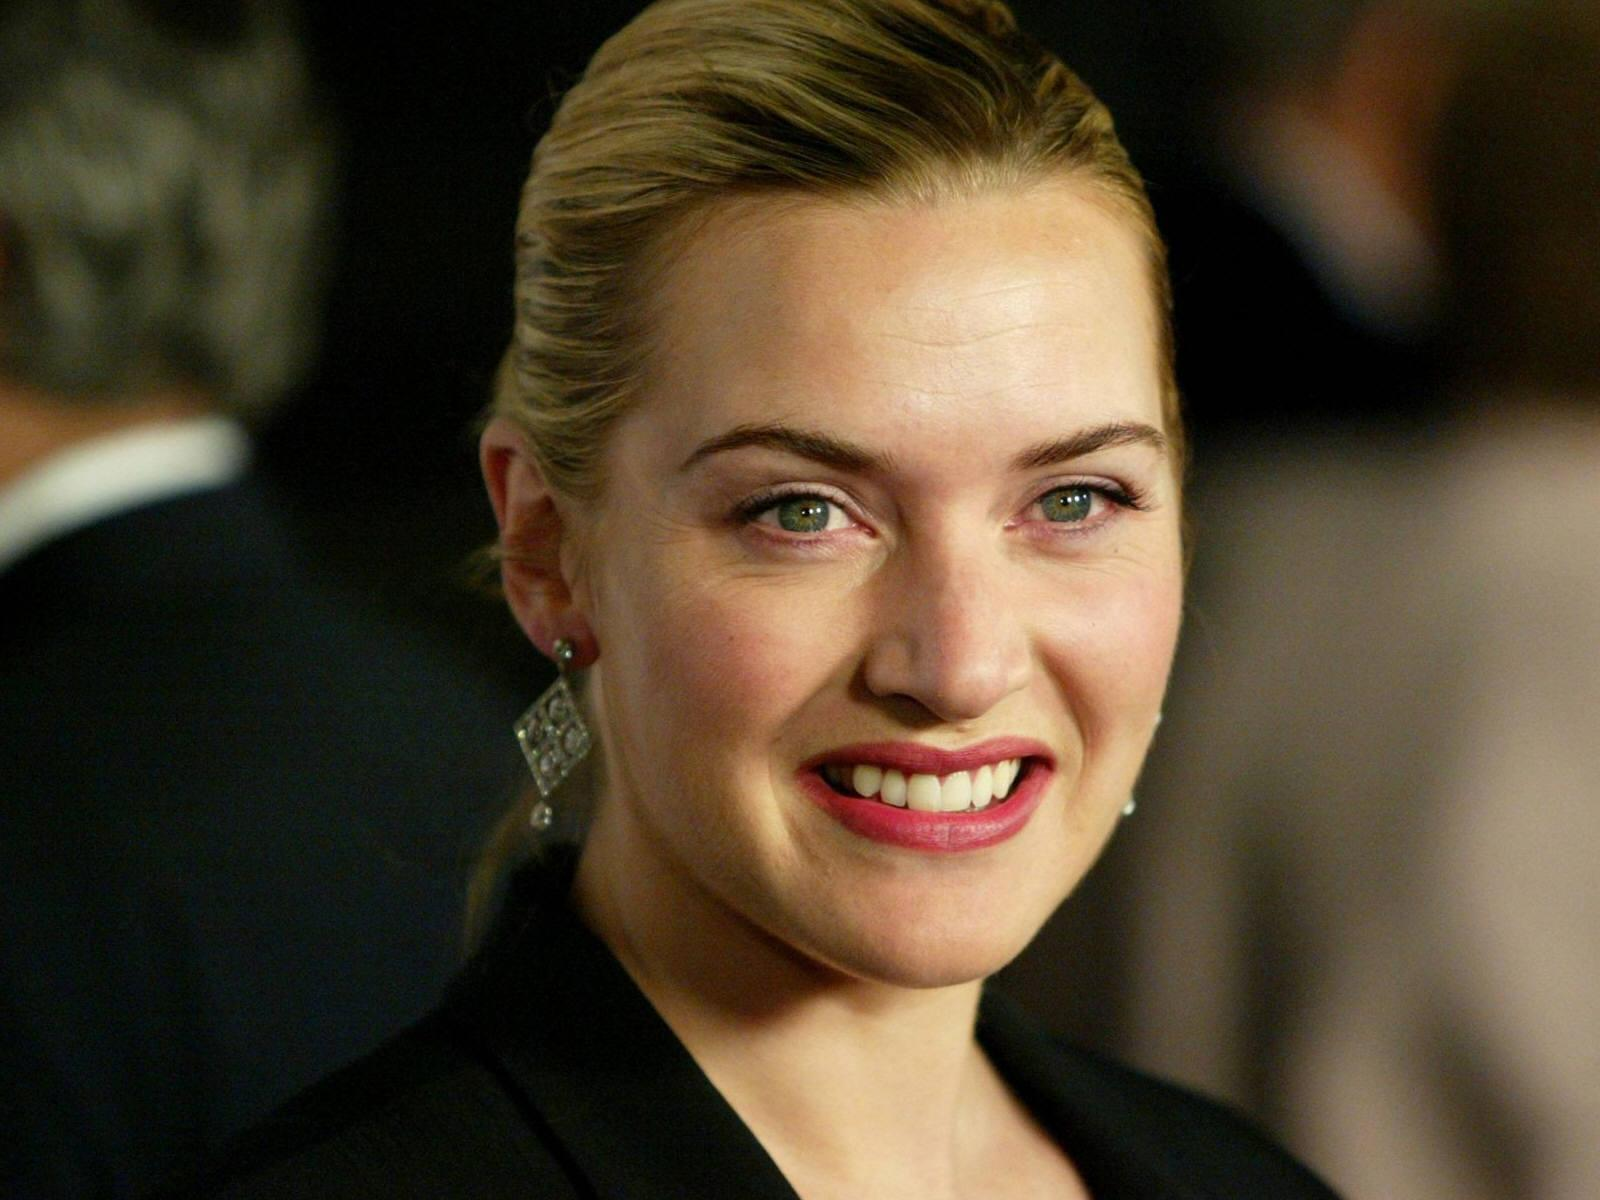 http://4.bp.blogspot.com/-DzWclEV363o/UEjG8WuaYOI/AAAAAAAAOsA/_K-dvRp39Rc/s1600/The-best-top-hd-desktop-kate-winslet-wallpaper-kate-winslet-wallpapers-14.jpeg